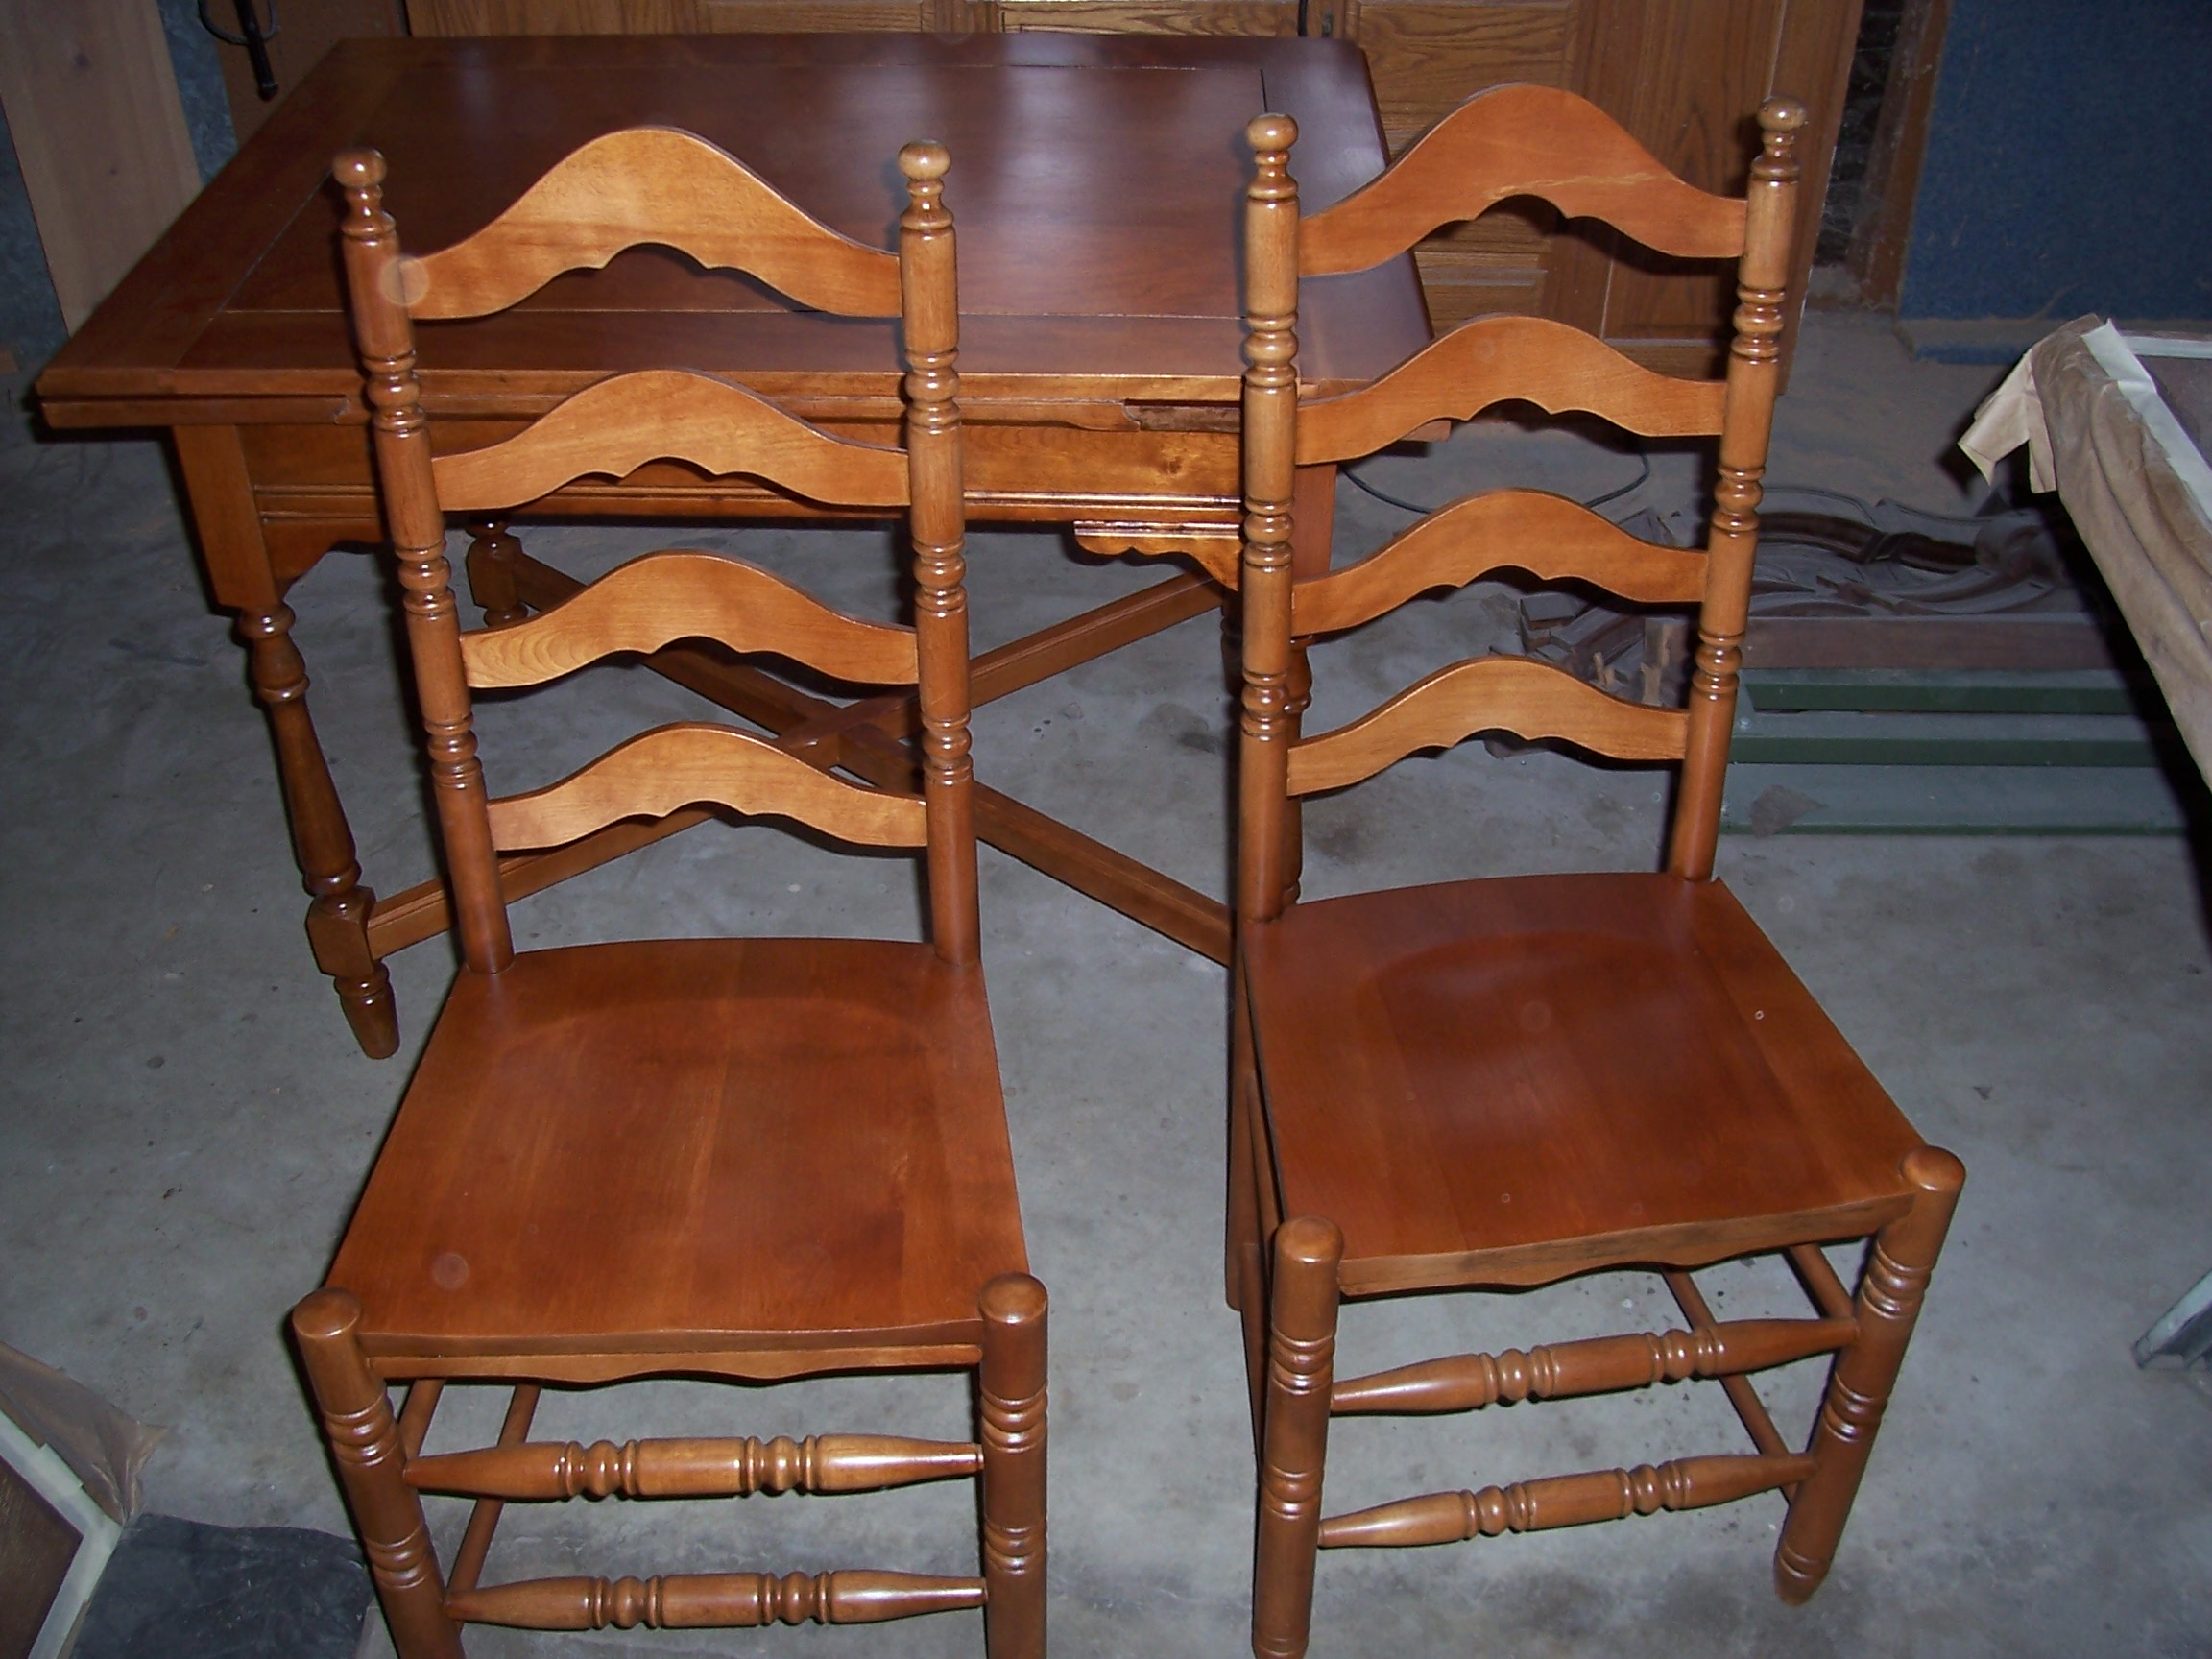 Antique maple table & chairs